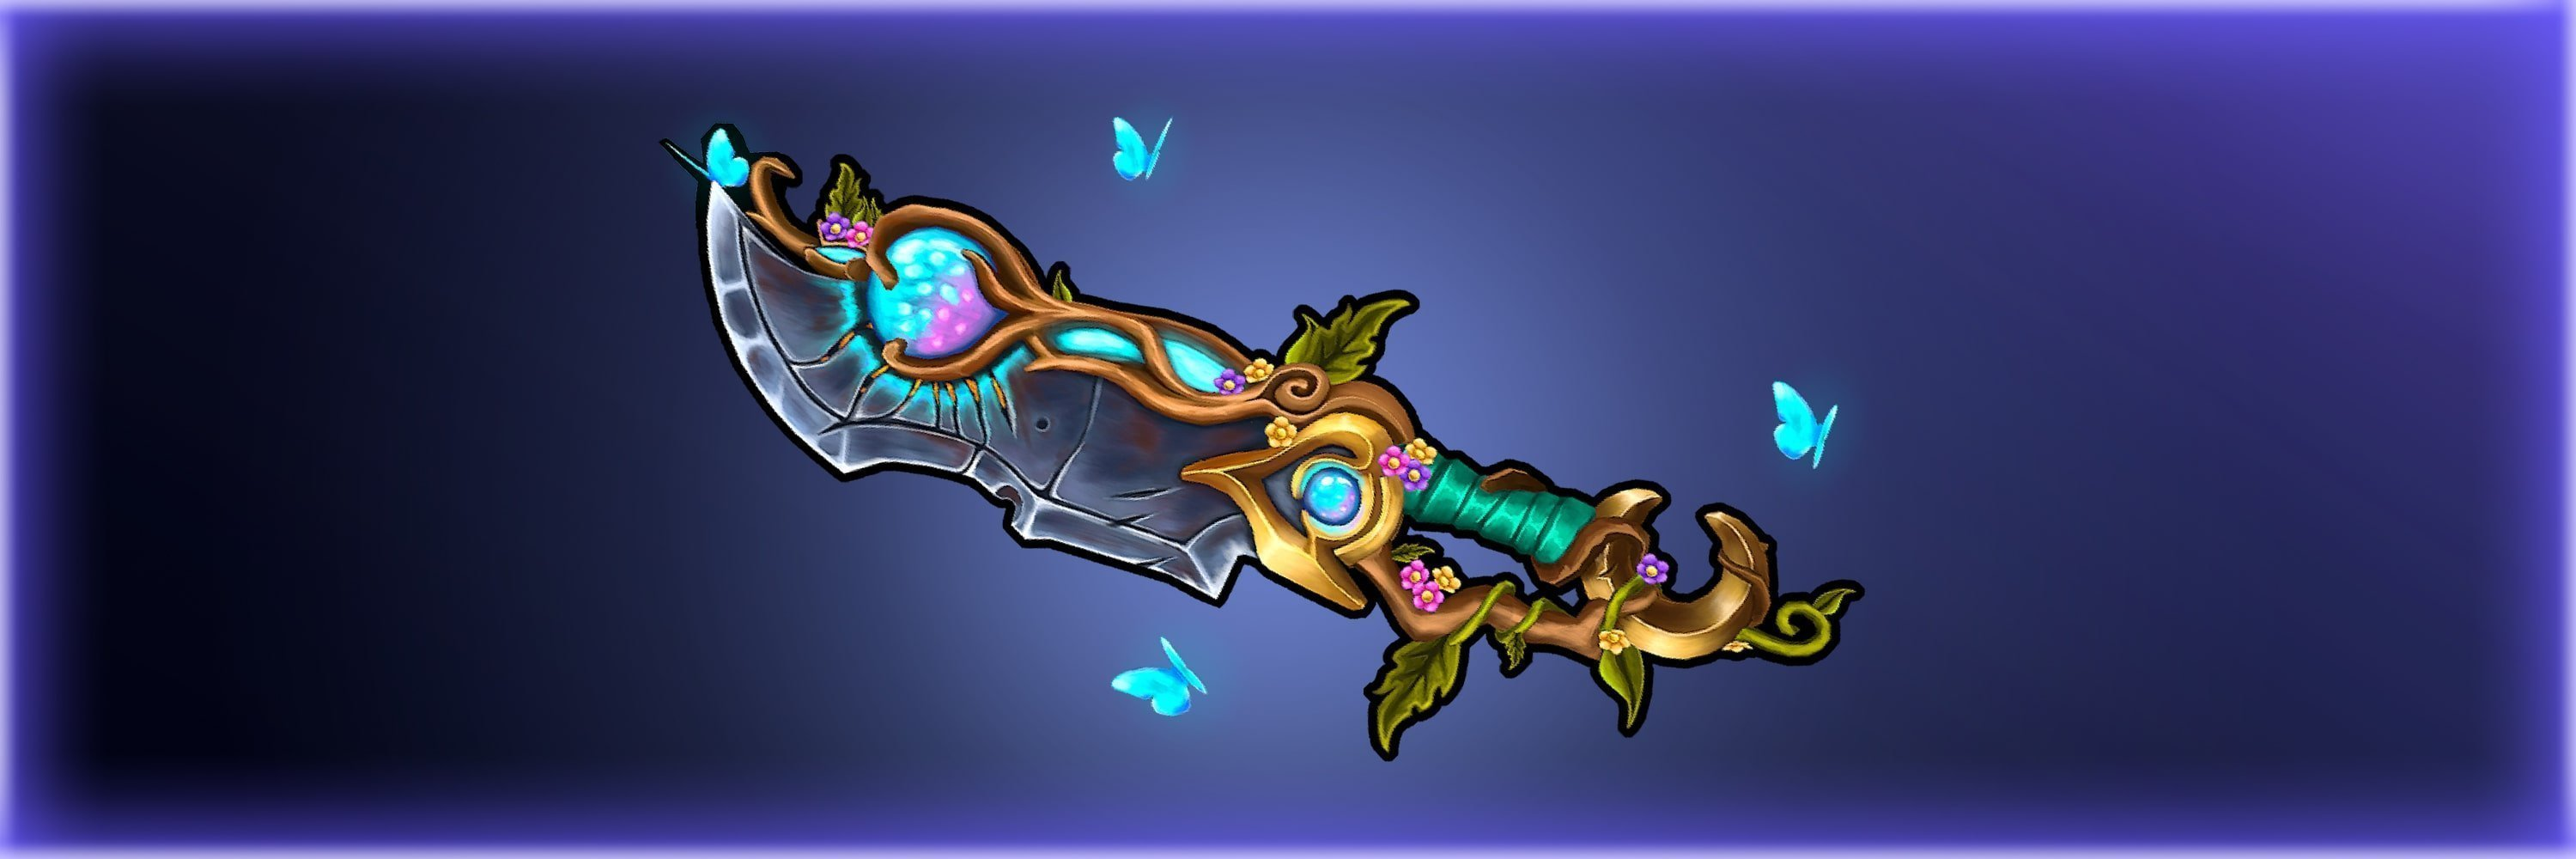 order of the forest weapon header image